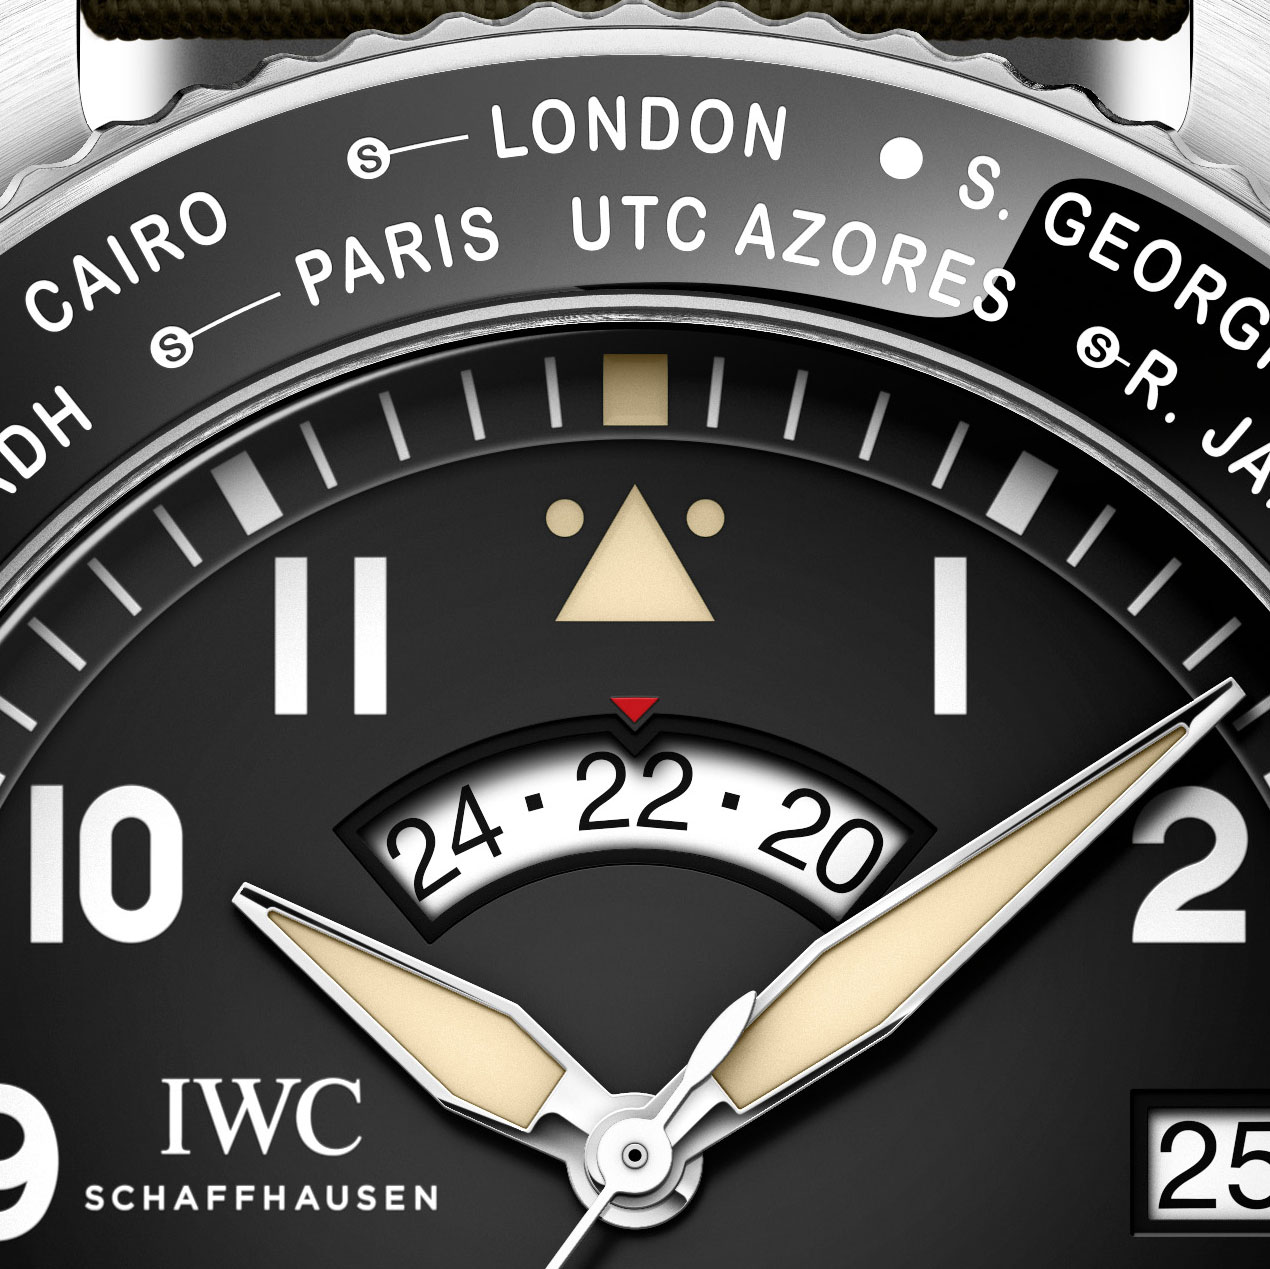 Lining up the city of interest at 12 o'clock using the bezel synchronizes the time, 24-hour indicator and the date